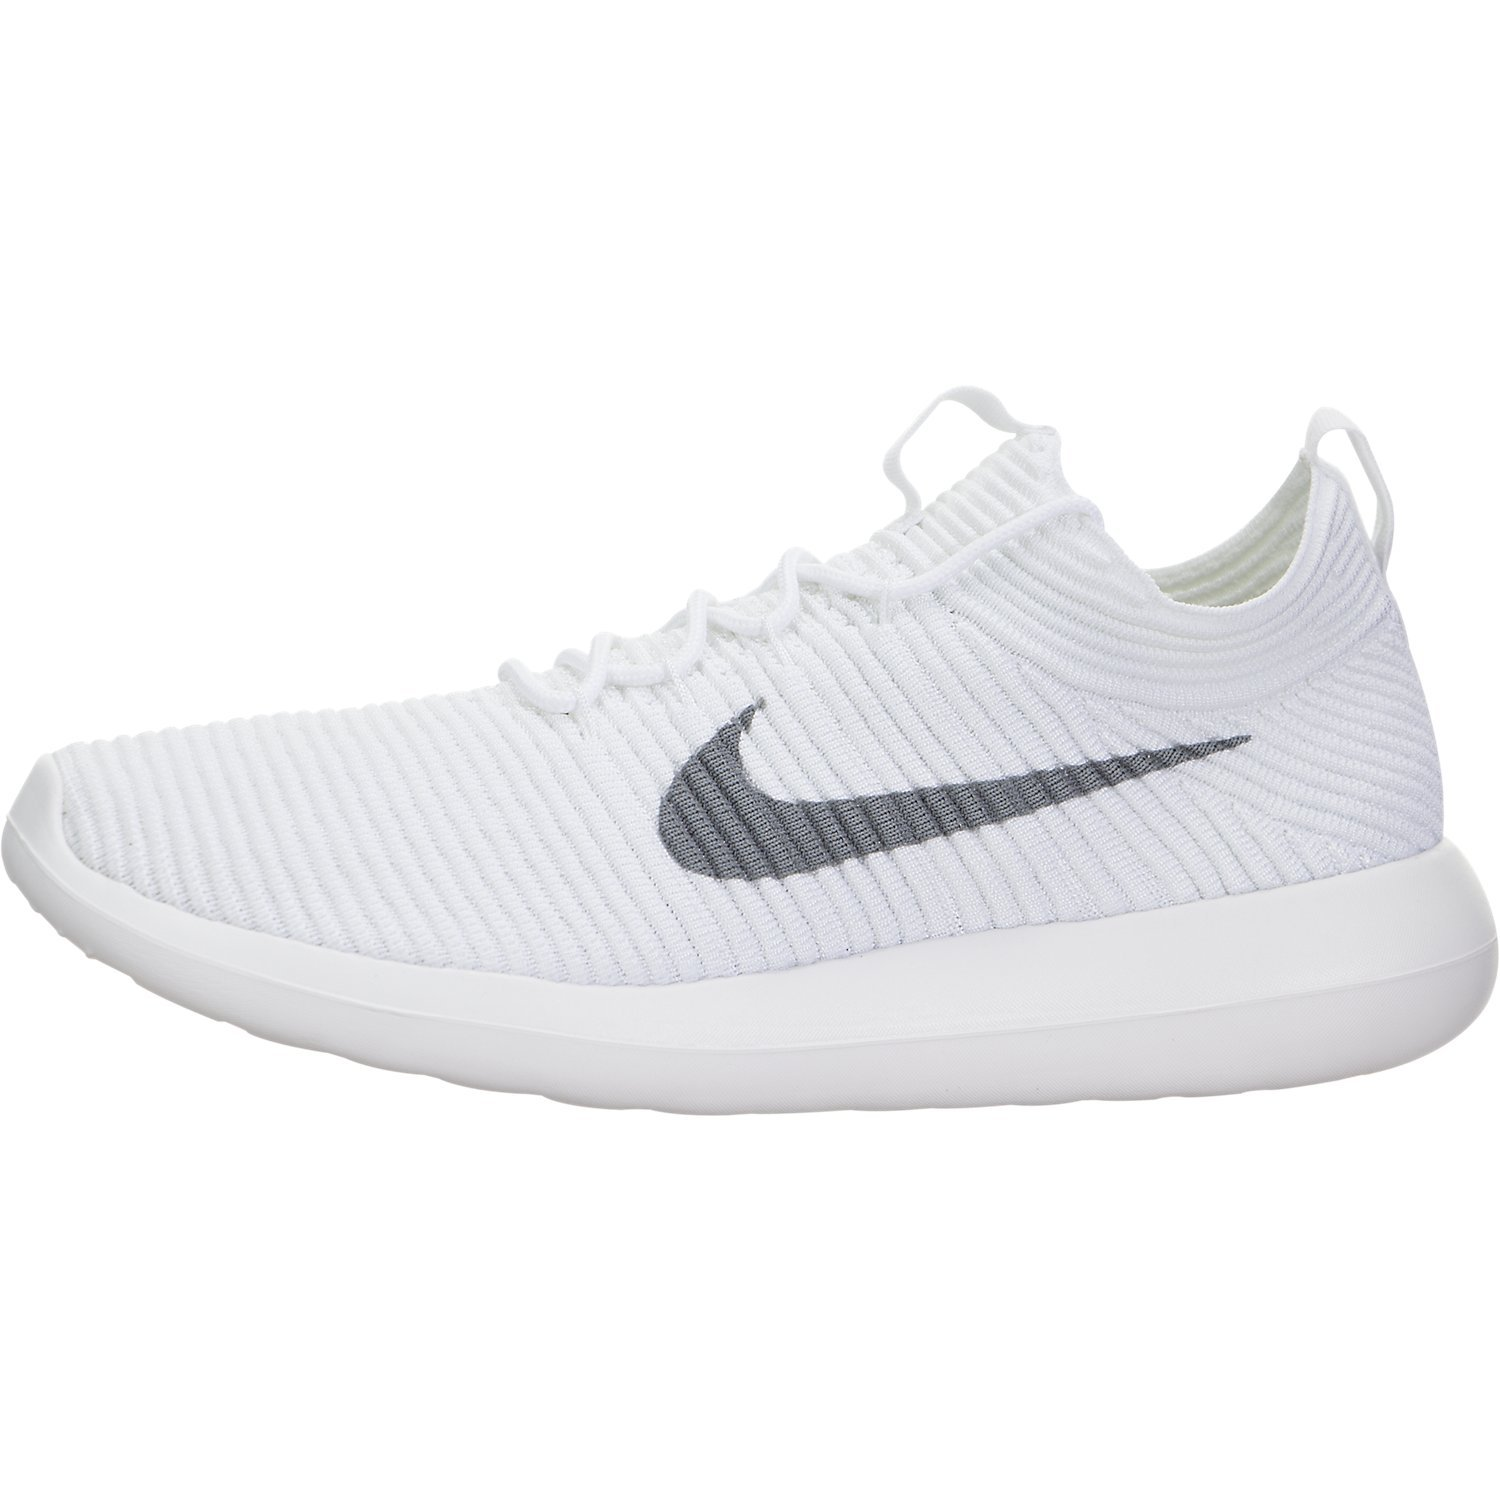 buy online d5b8b 69550 Nike Womens Roshe Two Flyknit V2 White/Wolf Grey White White Running Shoe 8  Women US